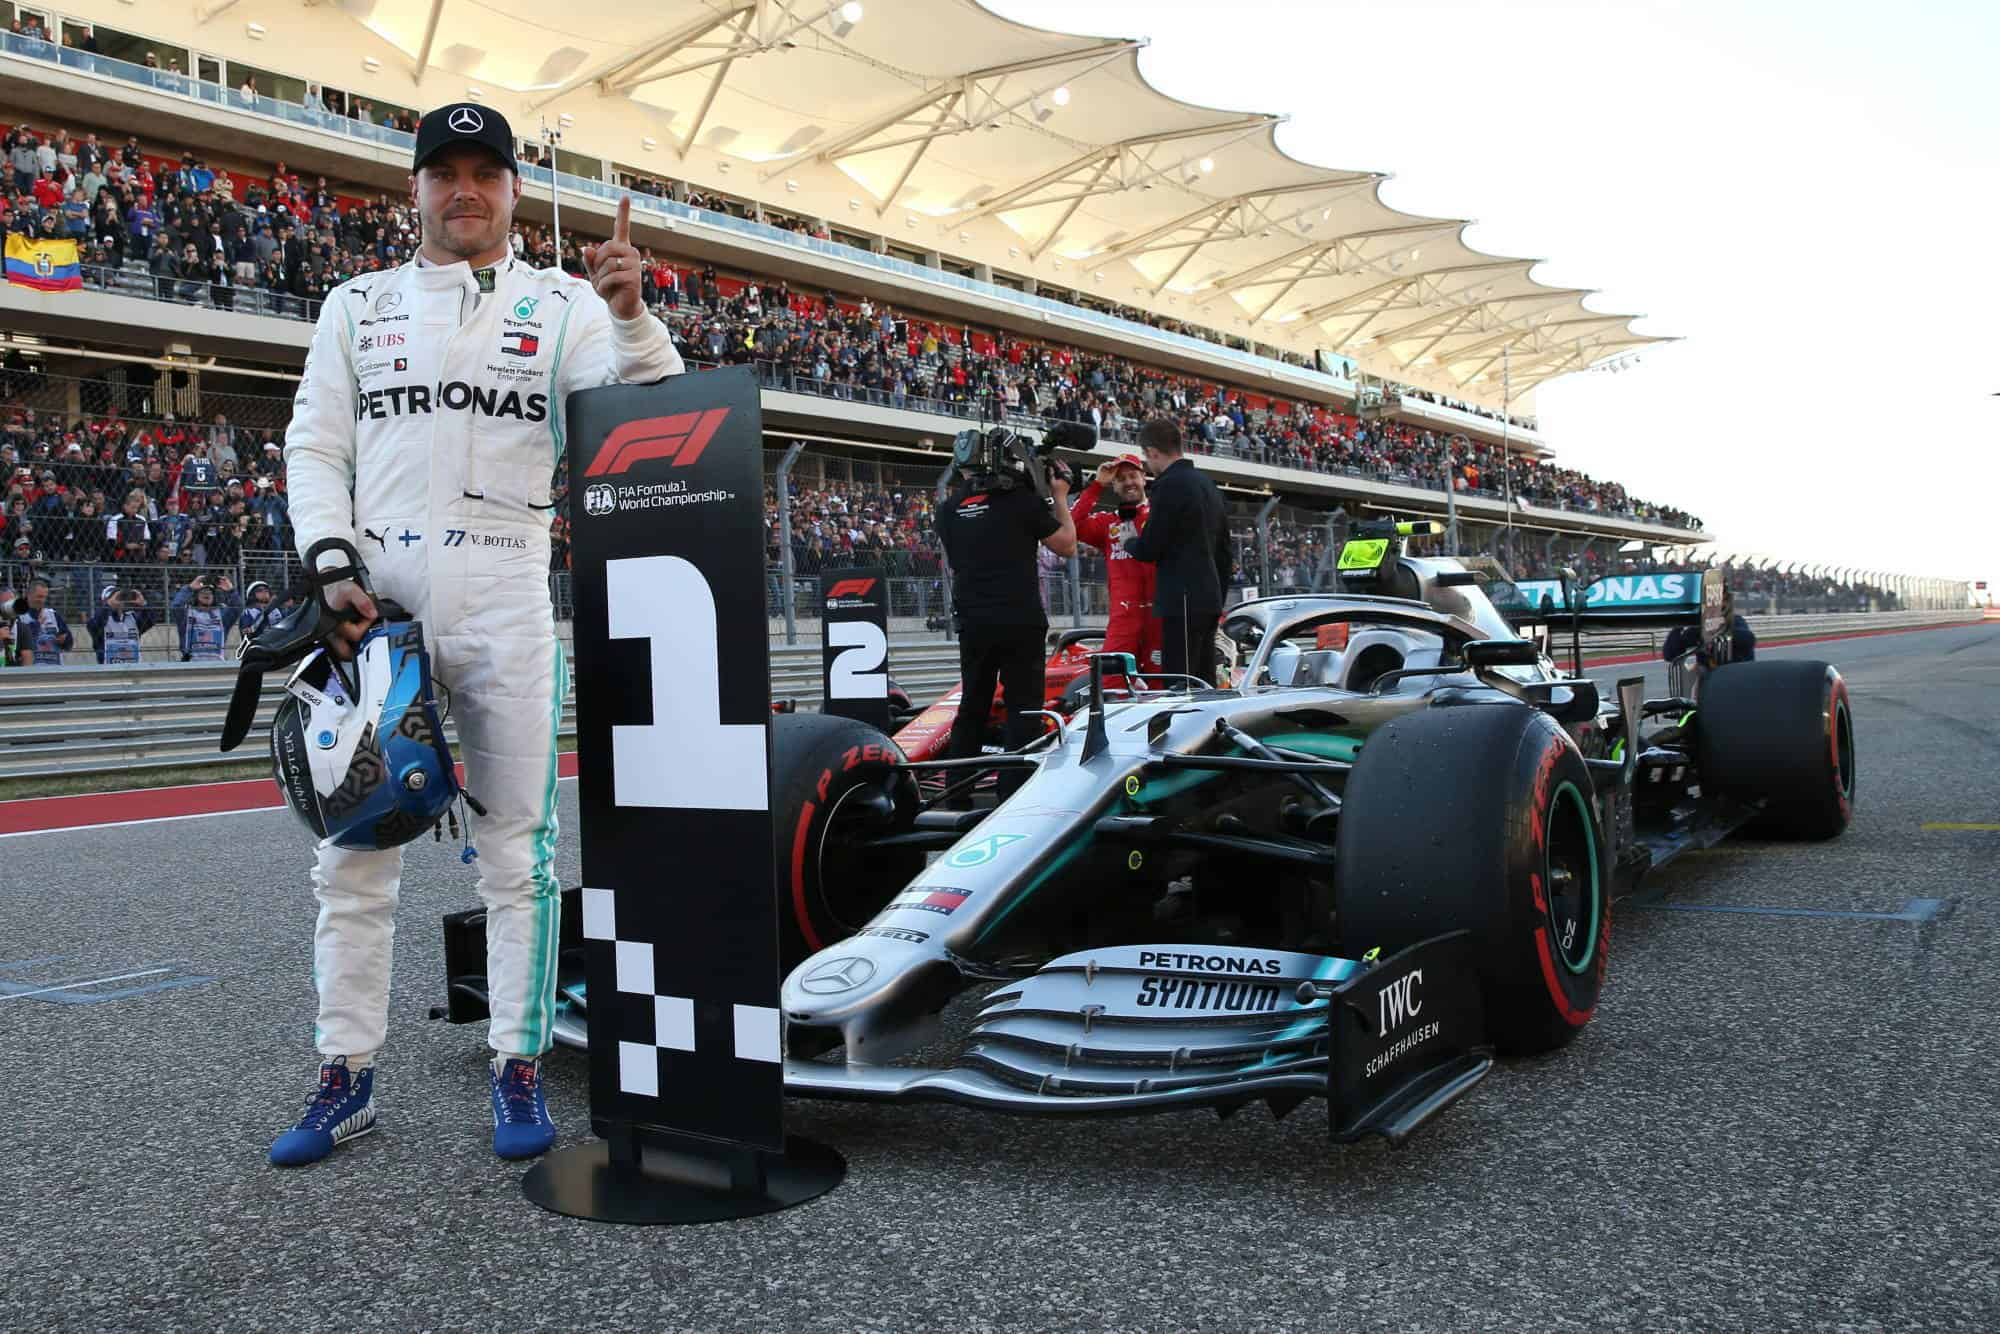 Bottas Mercedes USA GP Austin F1 after Qualifying on trakc with F1 W10 car 2019 Photo Daimler